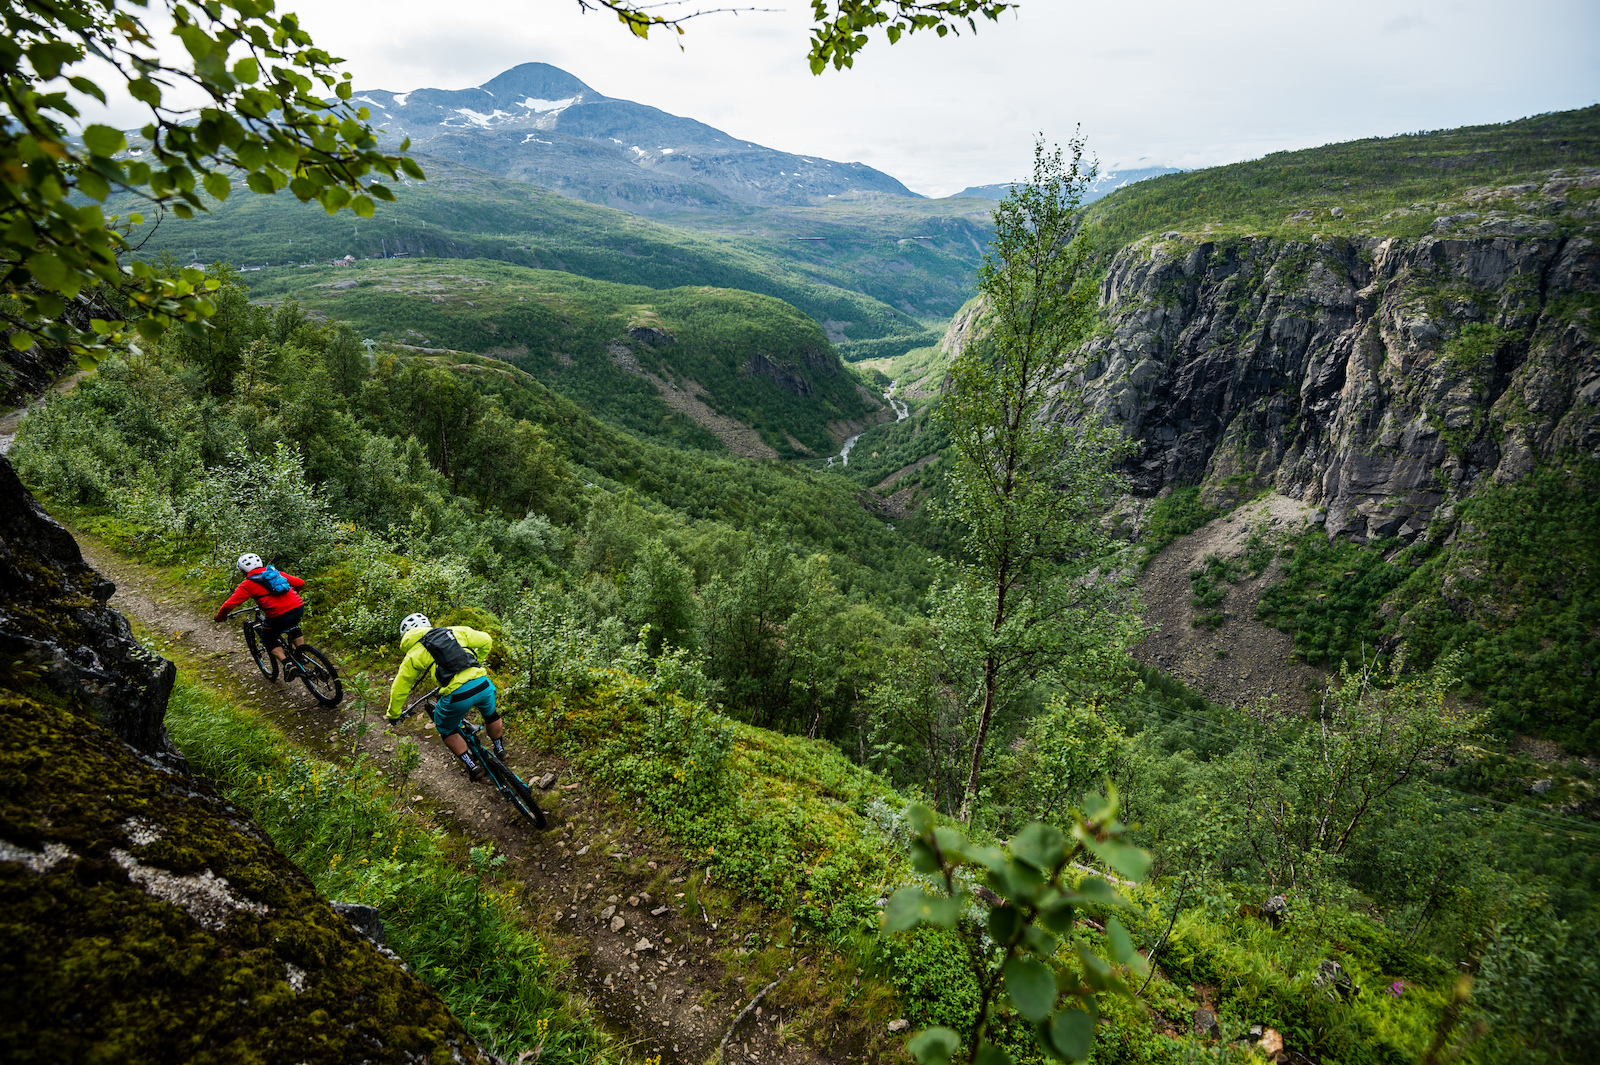 Mikael af Ekenstam and Joey Schulser mountain biking in Katterat Norway.